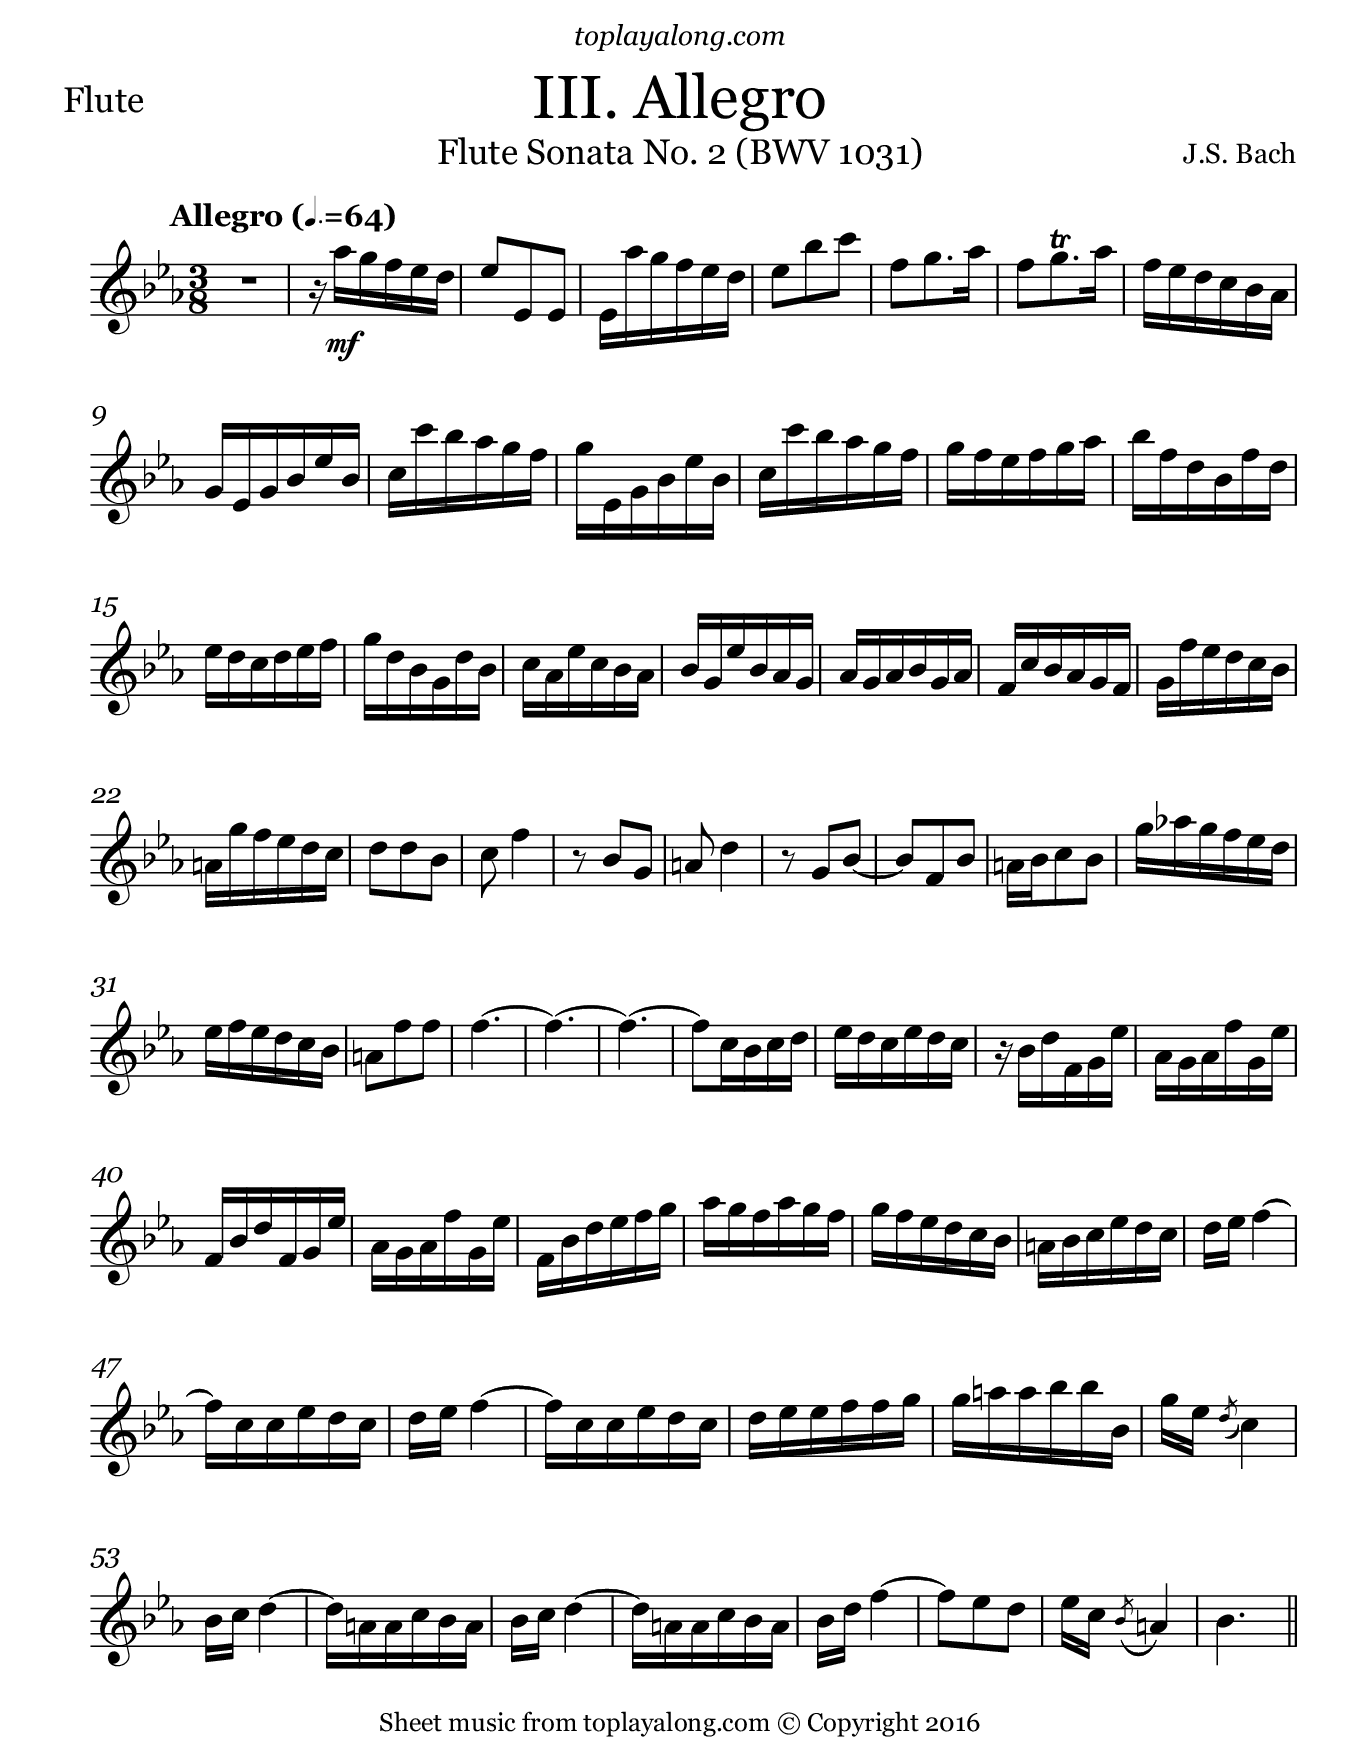 Flute Sonata BWV 1031 (III. Allegro) by J. S. Bach. Sheet music for Flute, page 1.